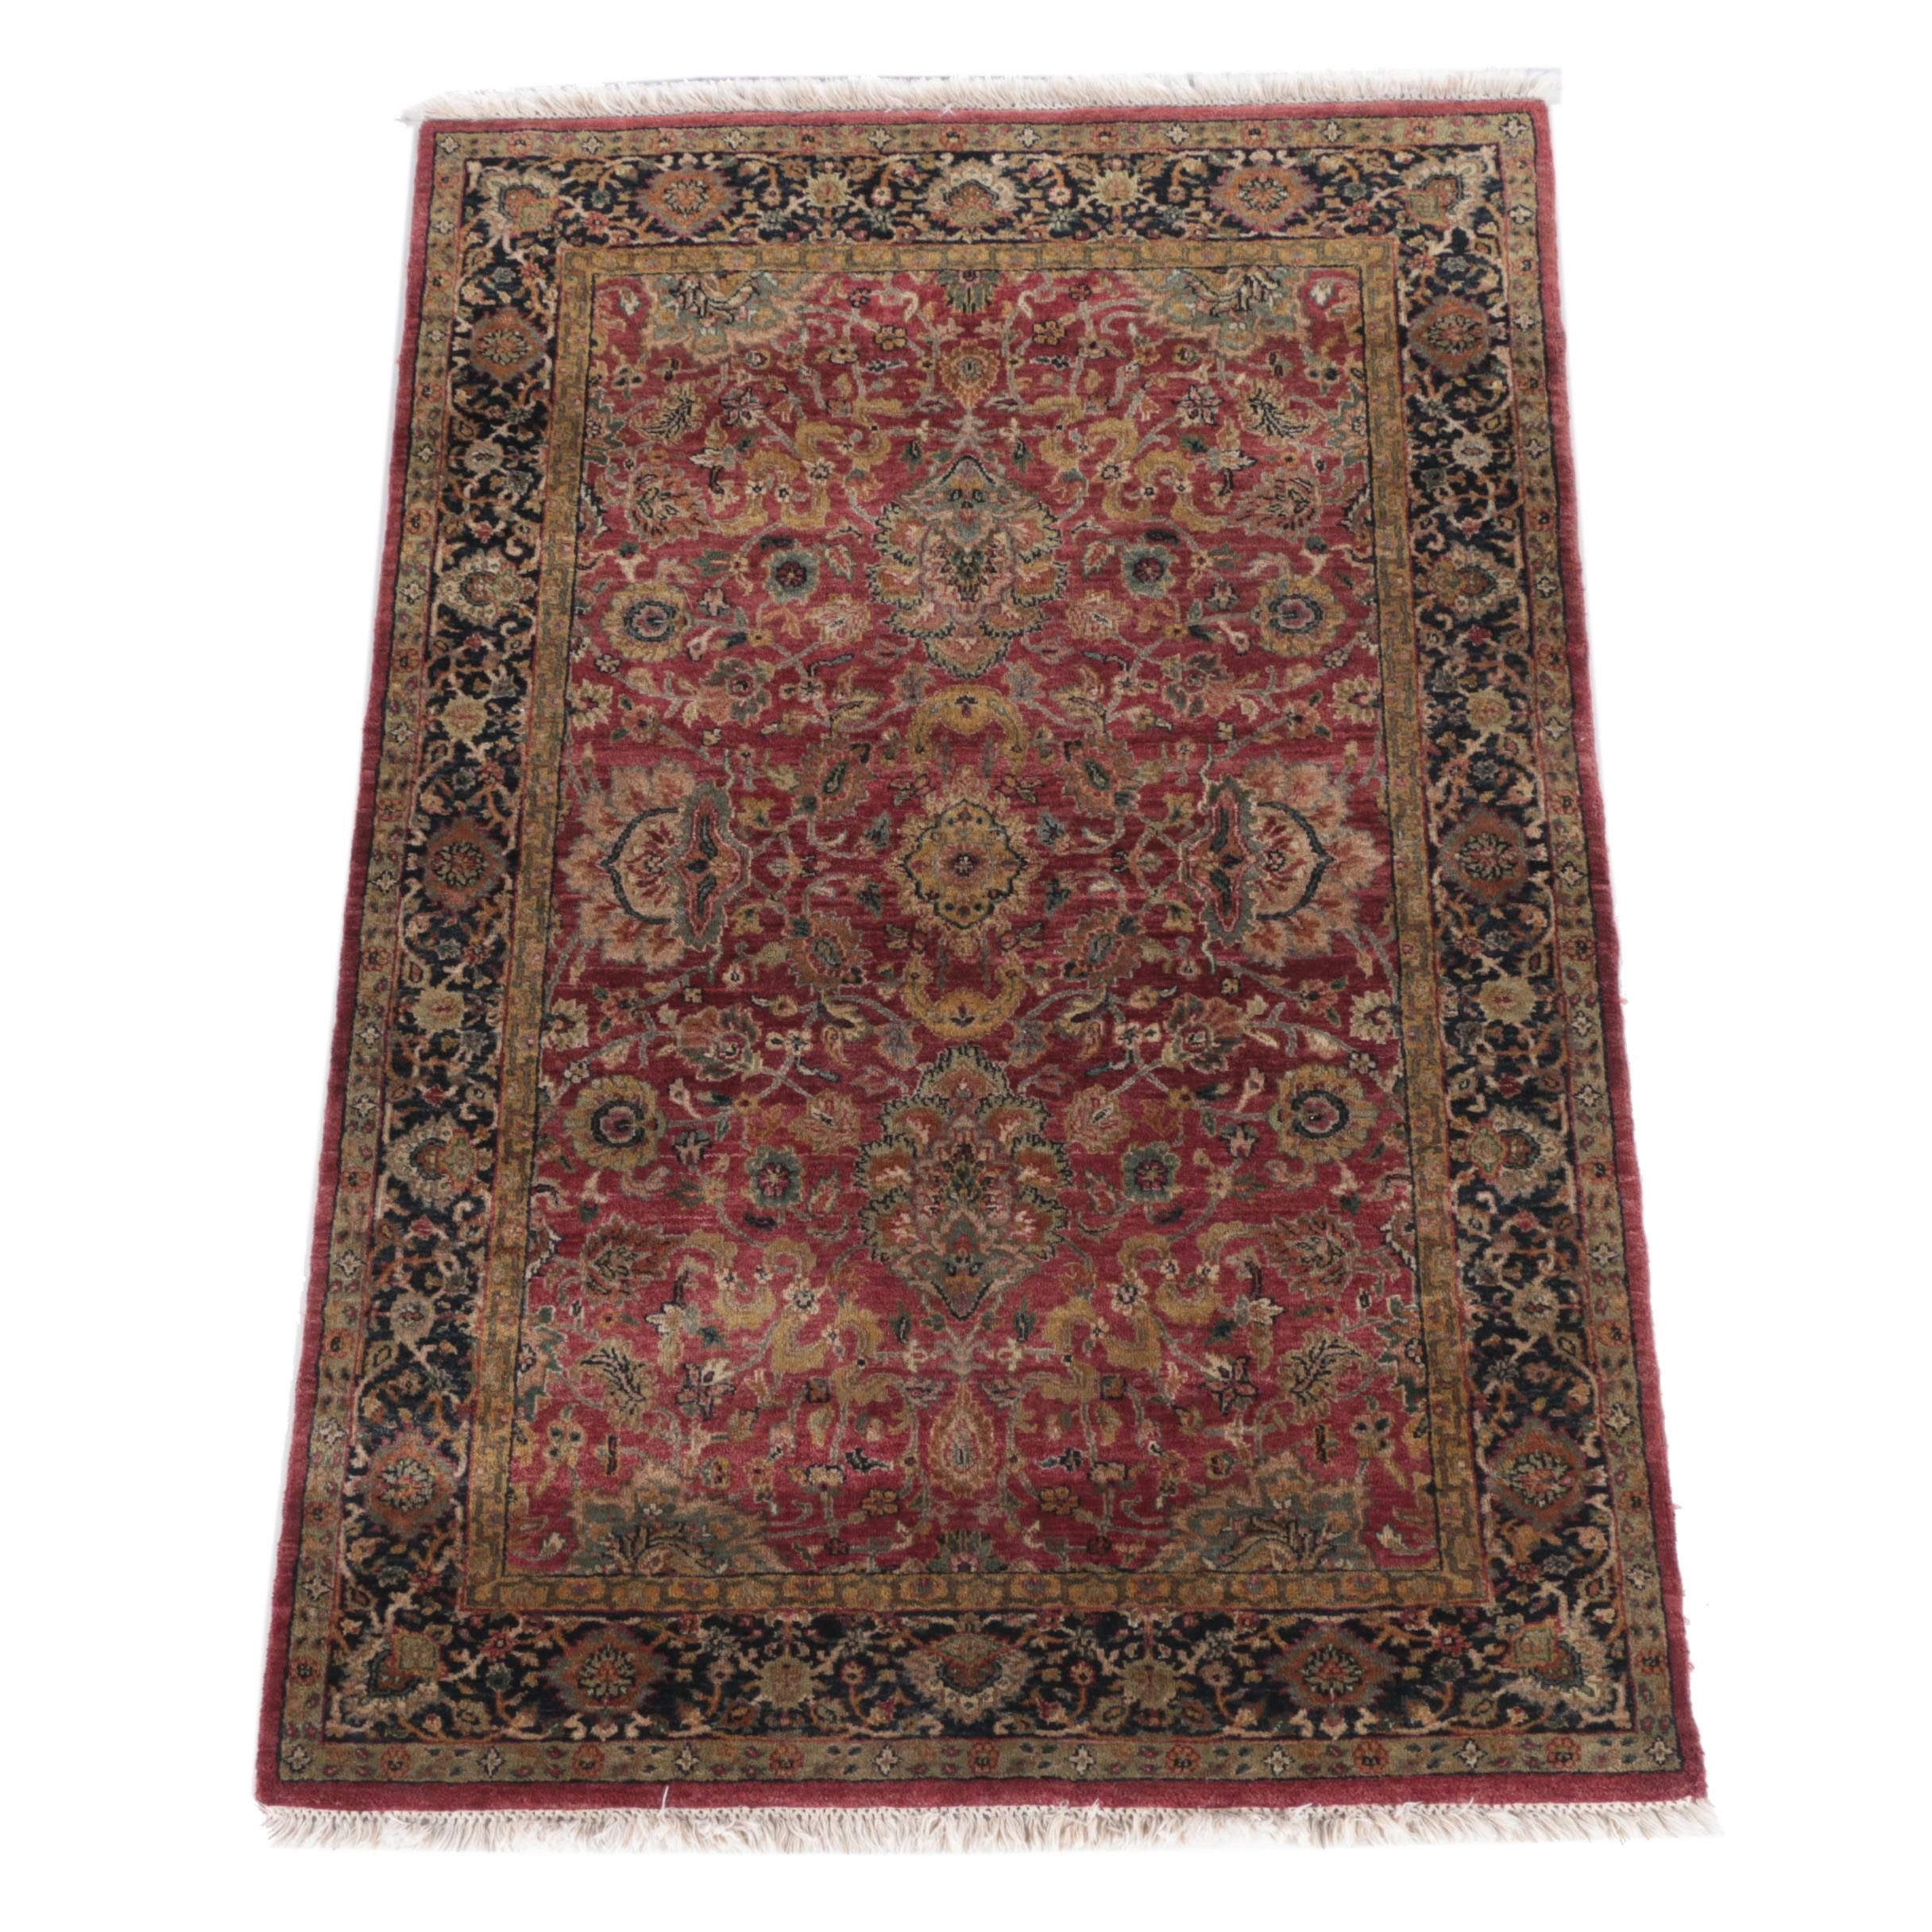 Hand-Knotted Turkish-Style Wool Area Rug